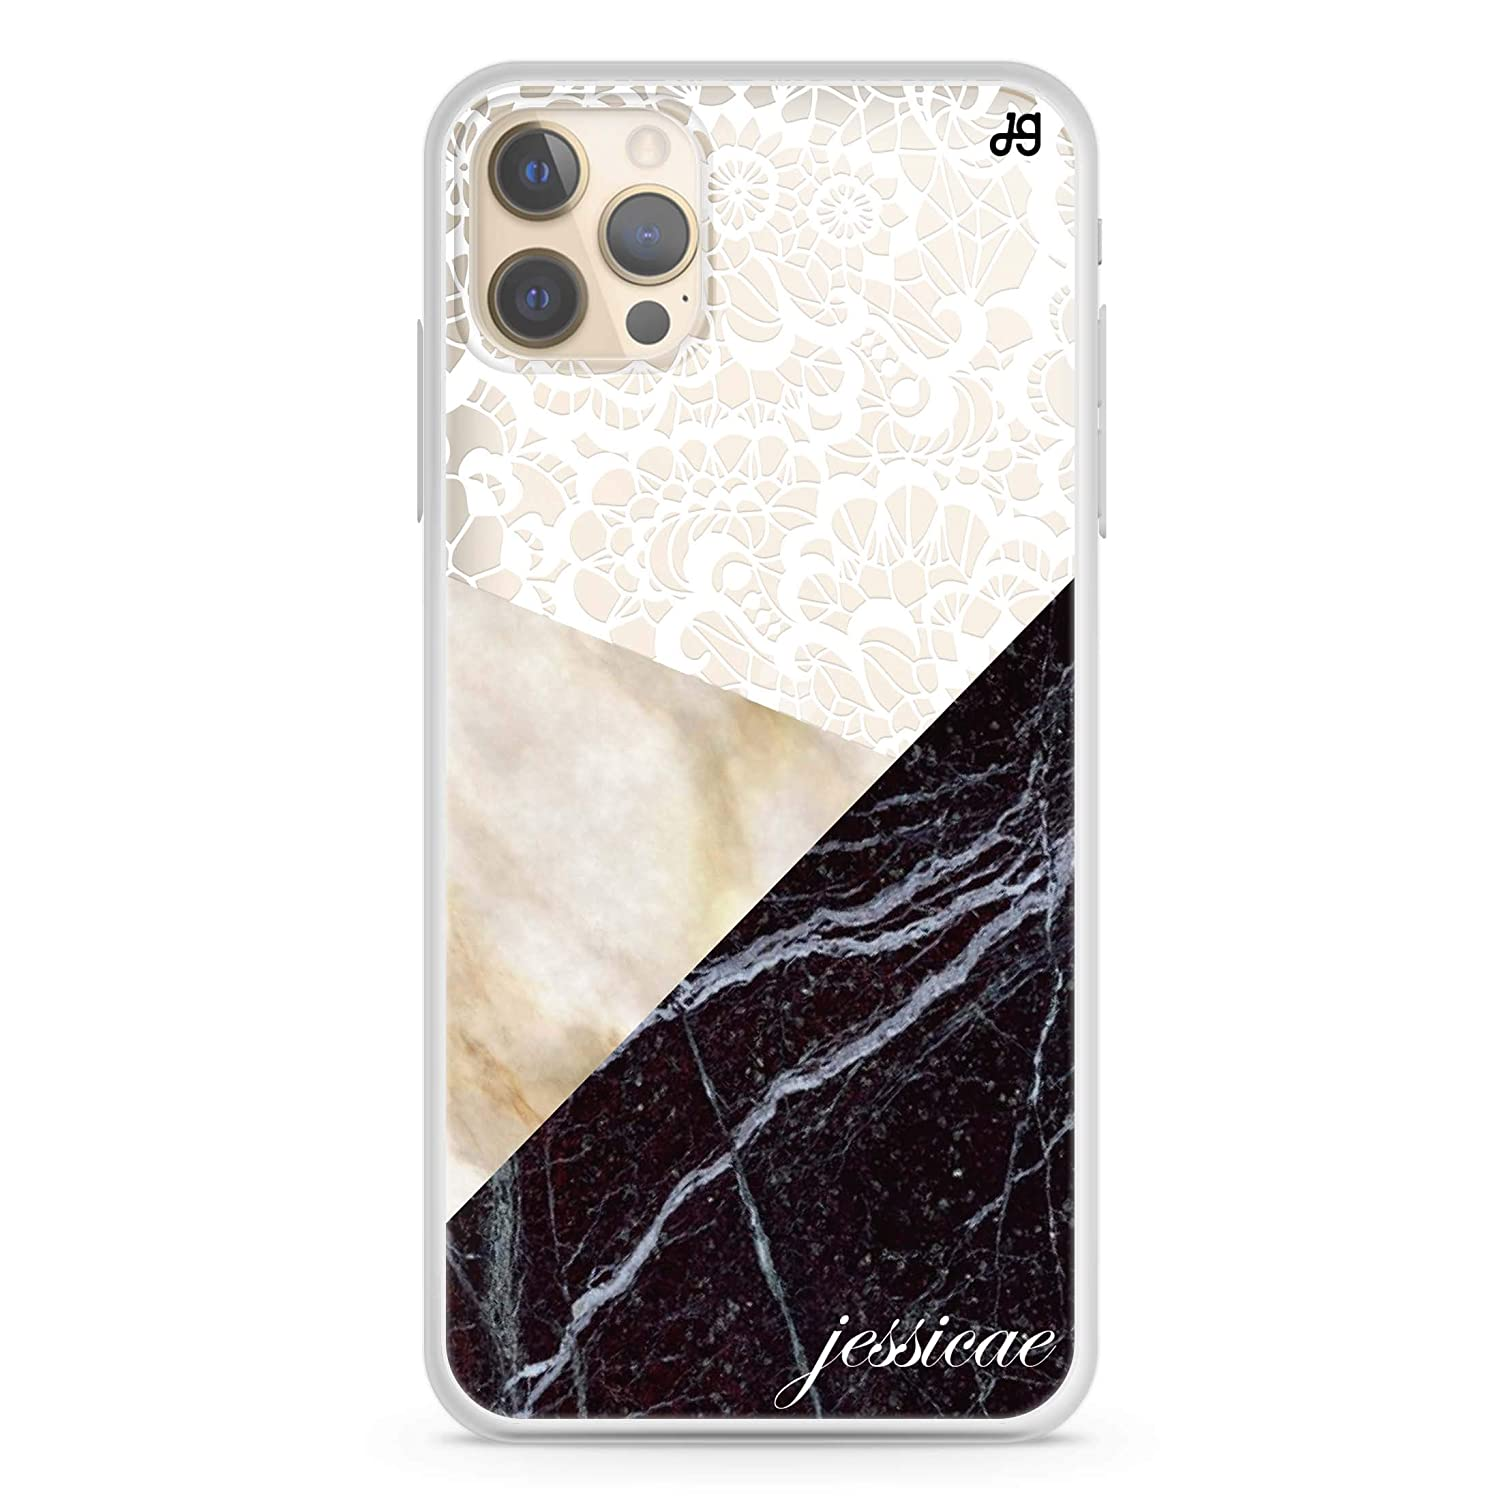 Marble Lace iPhone 12 Pro Case Clear Soft OFFicial shop Oklahoma City Mall Max